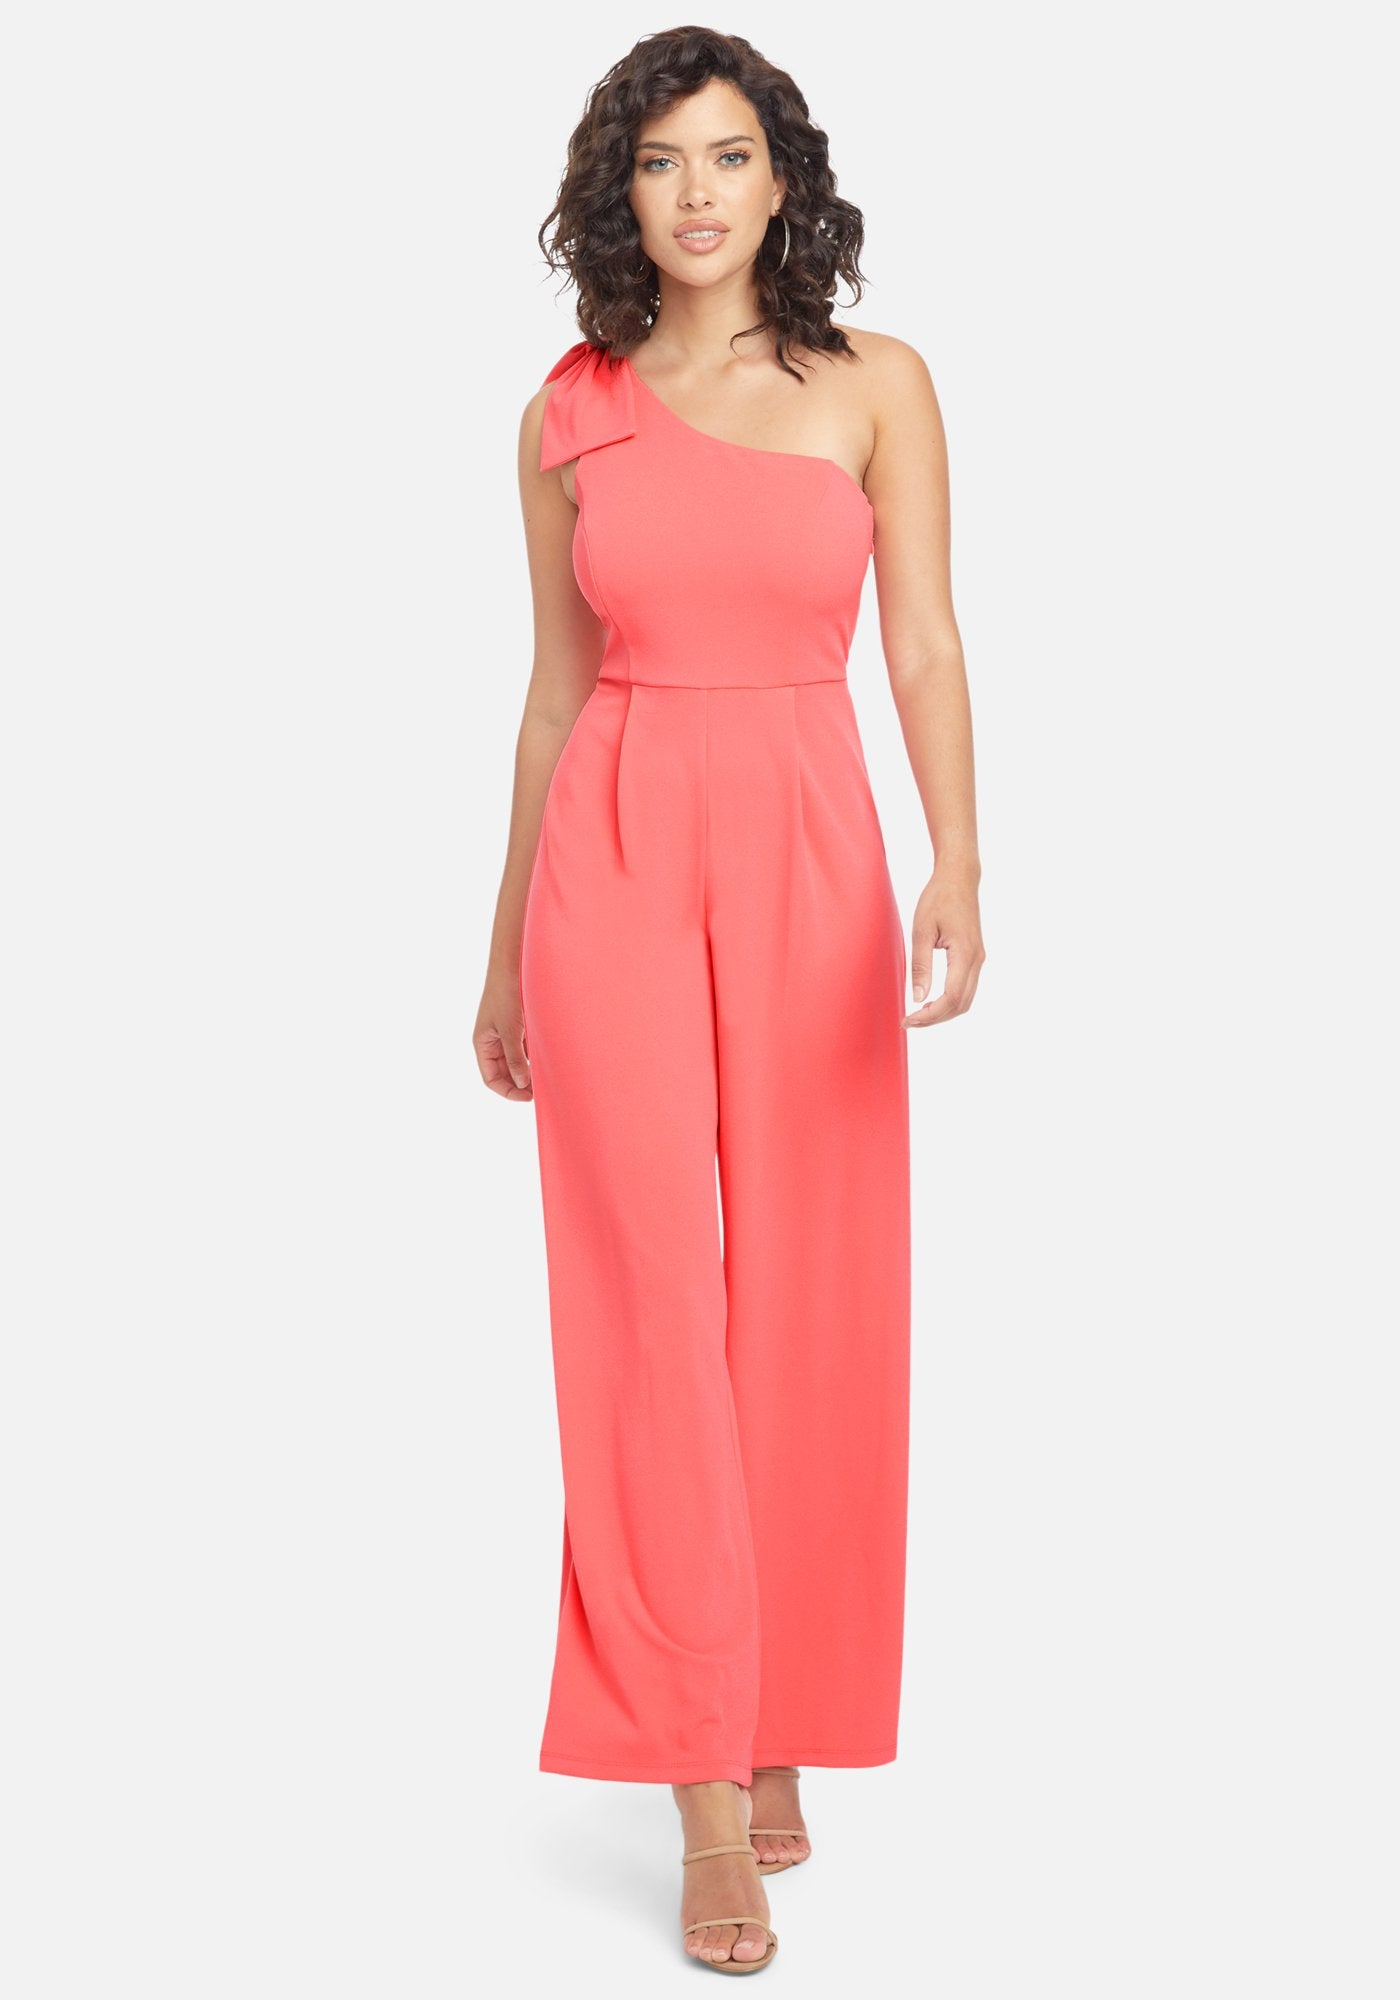 Bebe Women's One Shoulder Bow Jumpsuit, Size 2 in Coral Polyester/Spandex